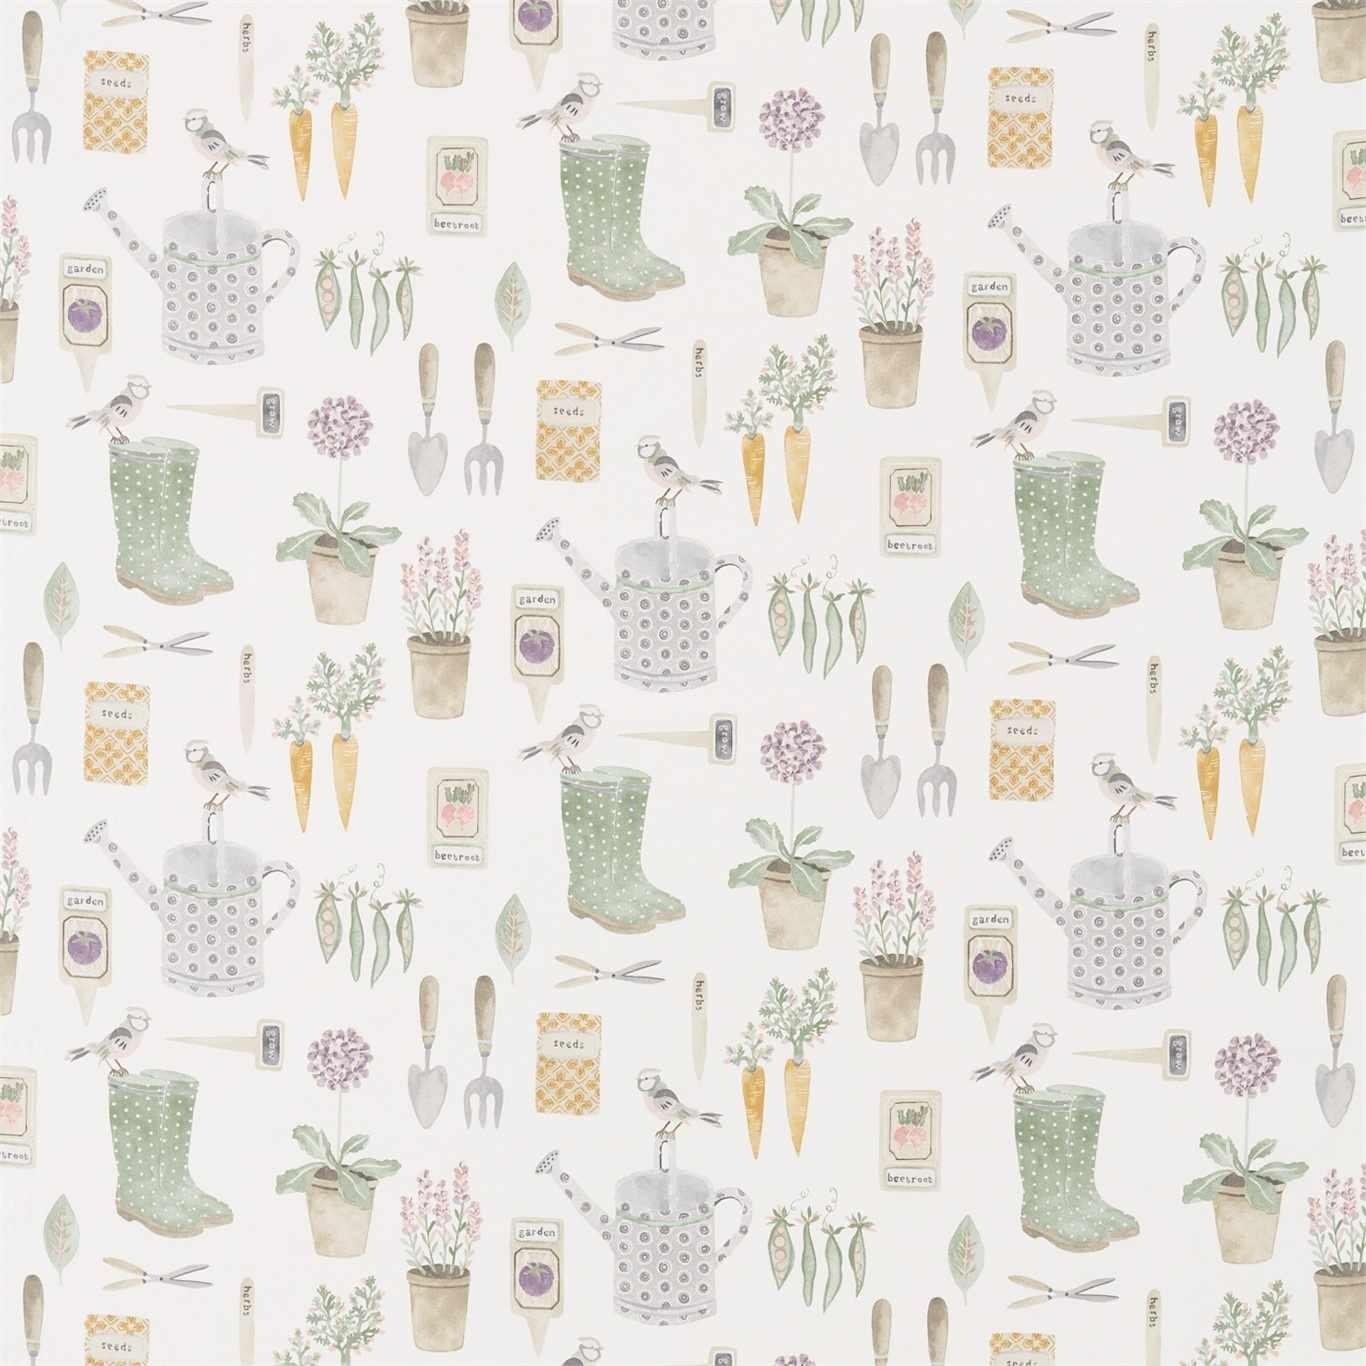 Image of Sanderson Home The Gardener Fig Fabric 226346